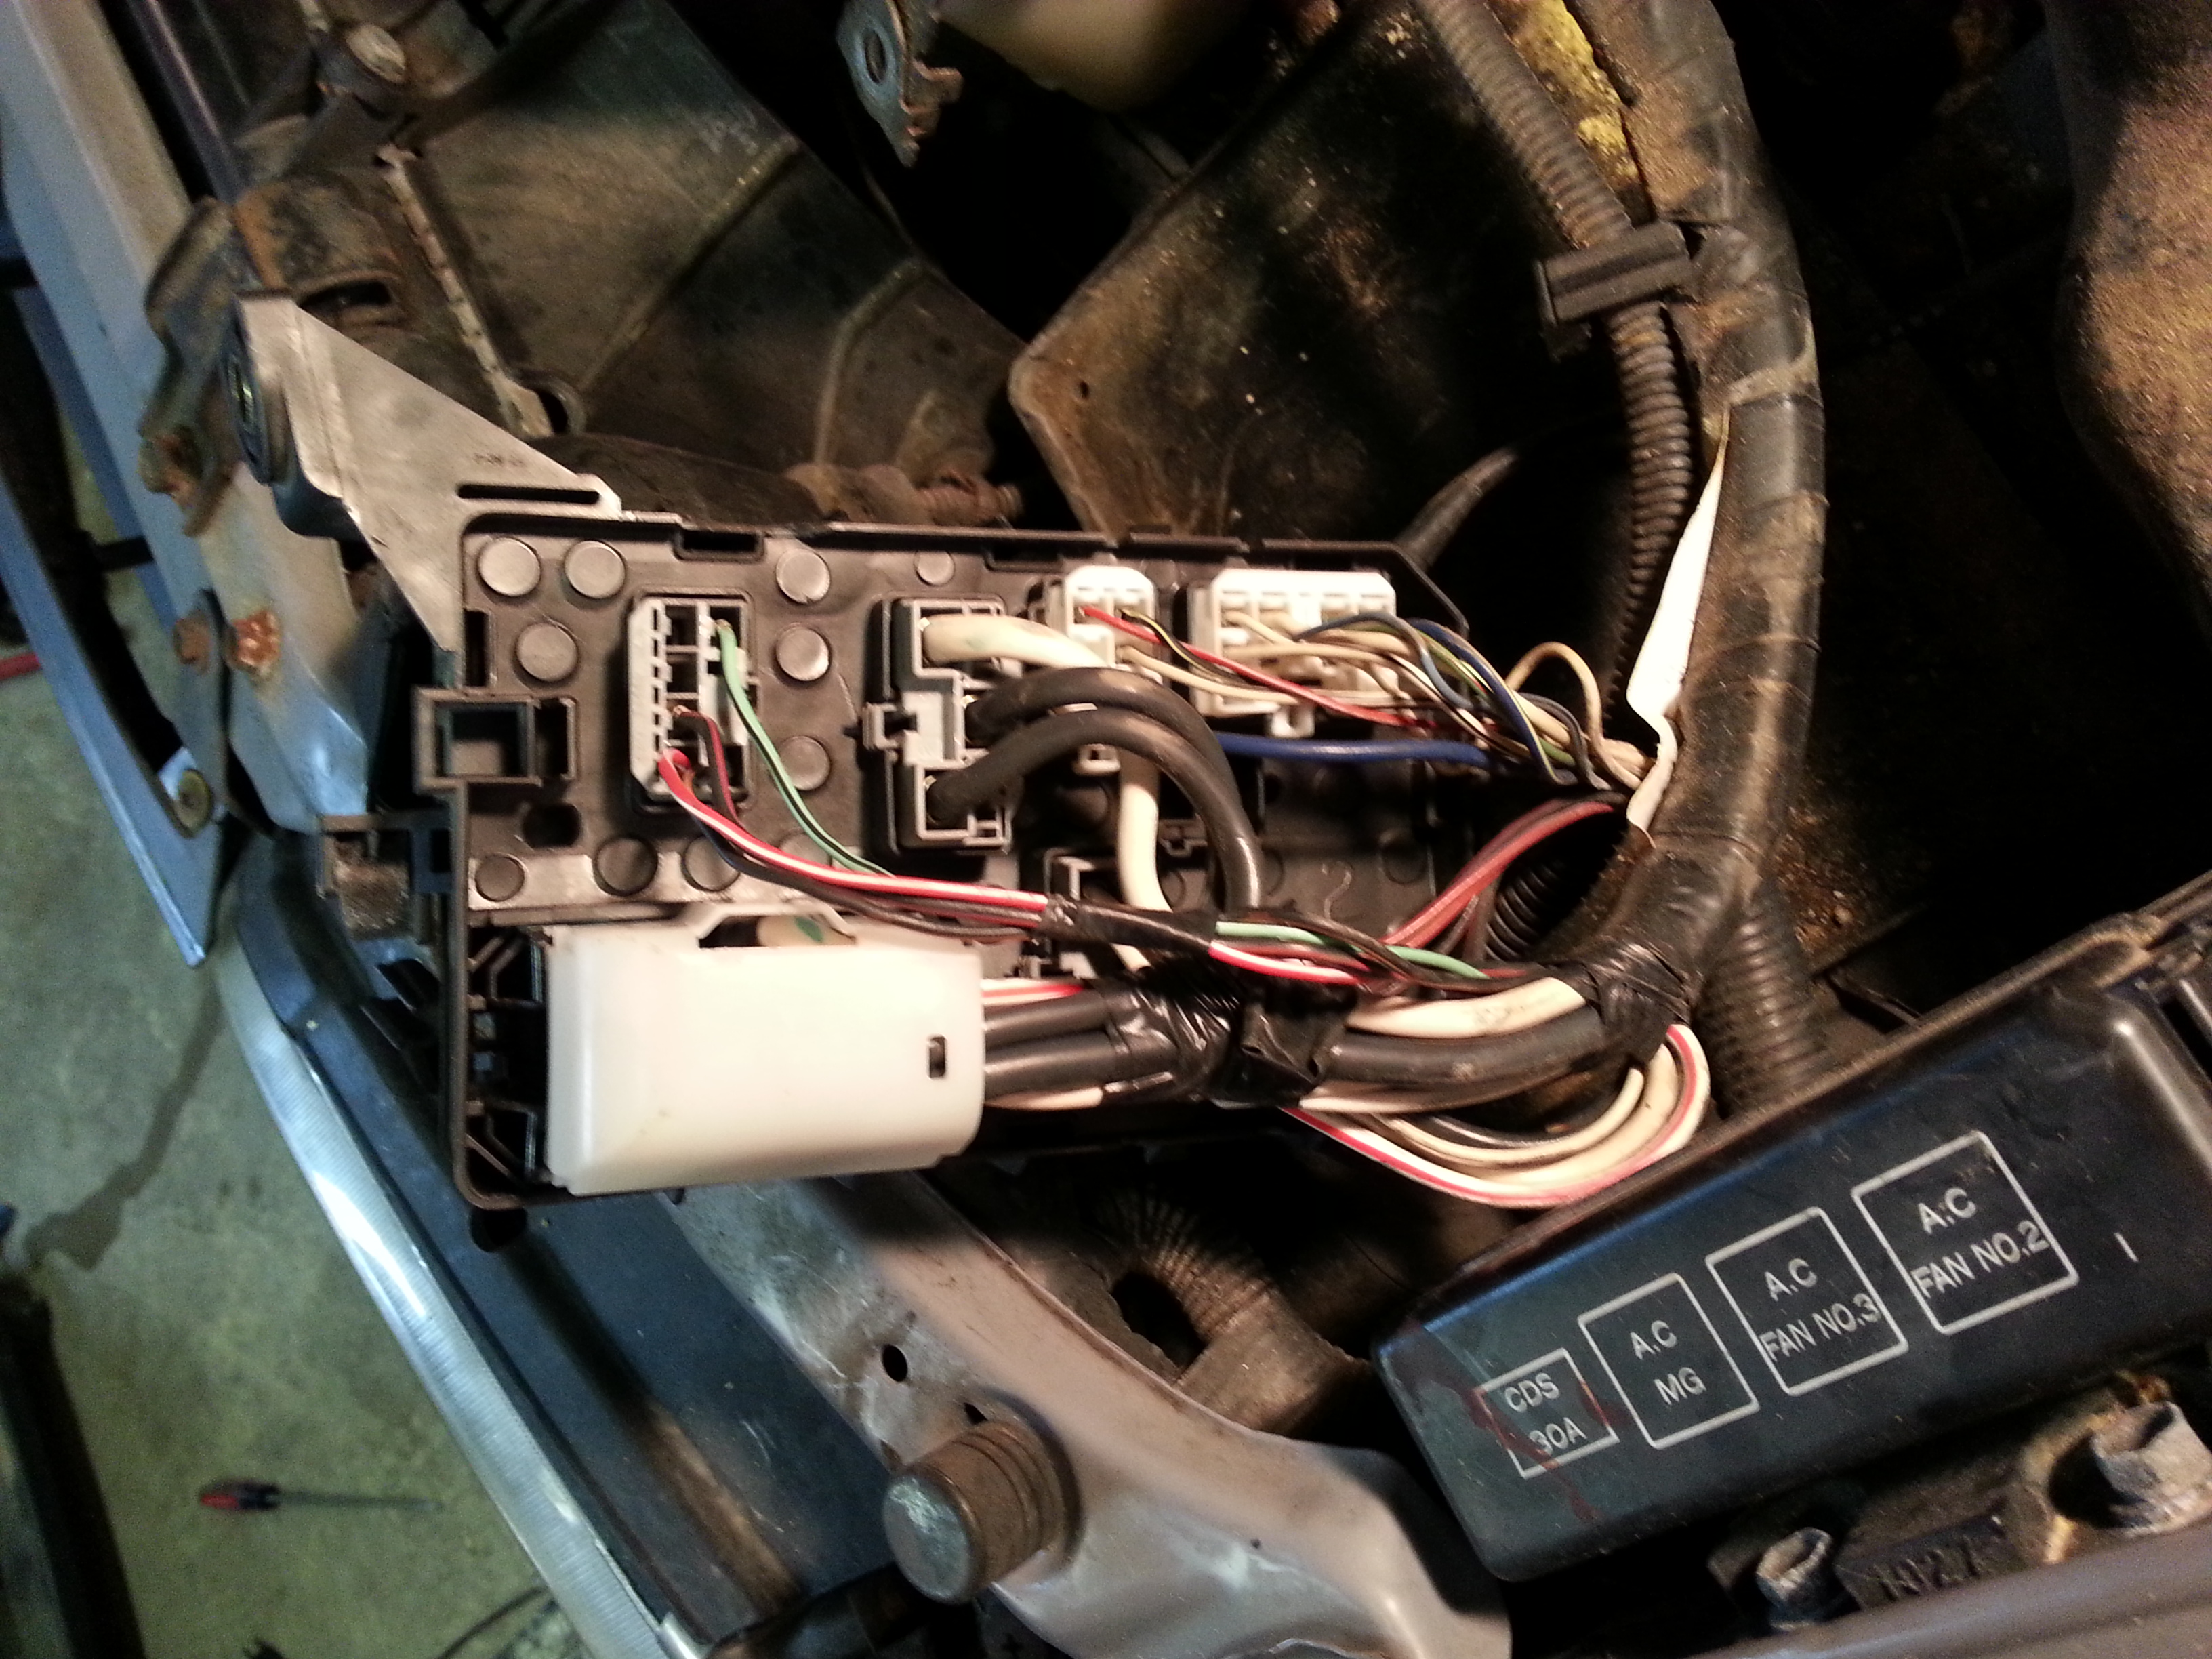 1995 Toyota Corolla With 18 No Spark 12 V To Coil Checked 95 Wiring Diagram Dlc We Tried But The Halves Dont Seem Want Come Apart Do Need Take Connectors Off Bottom That